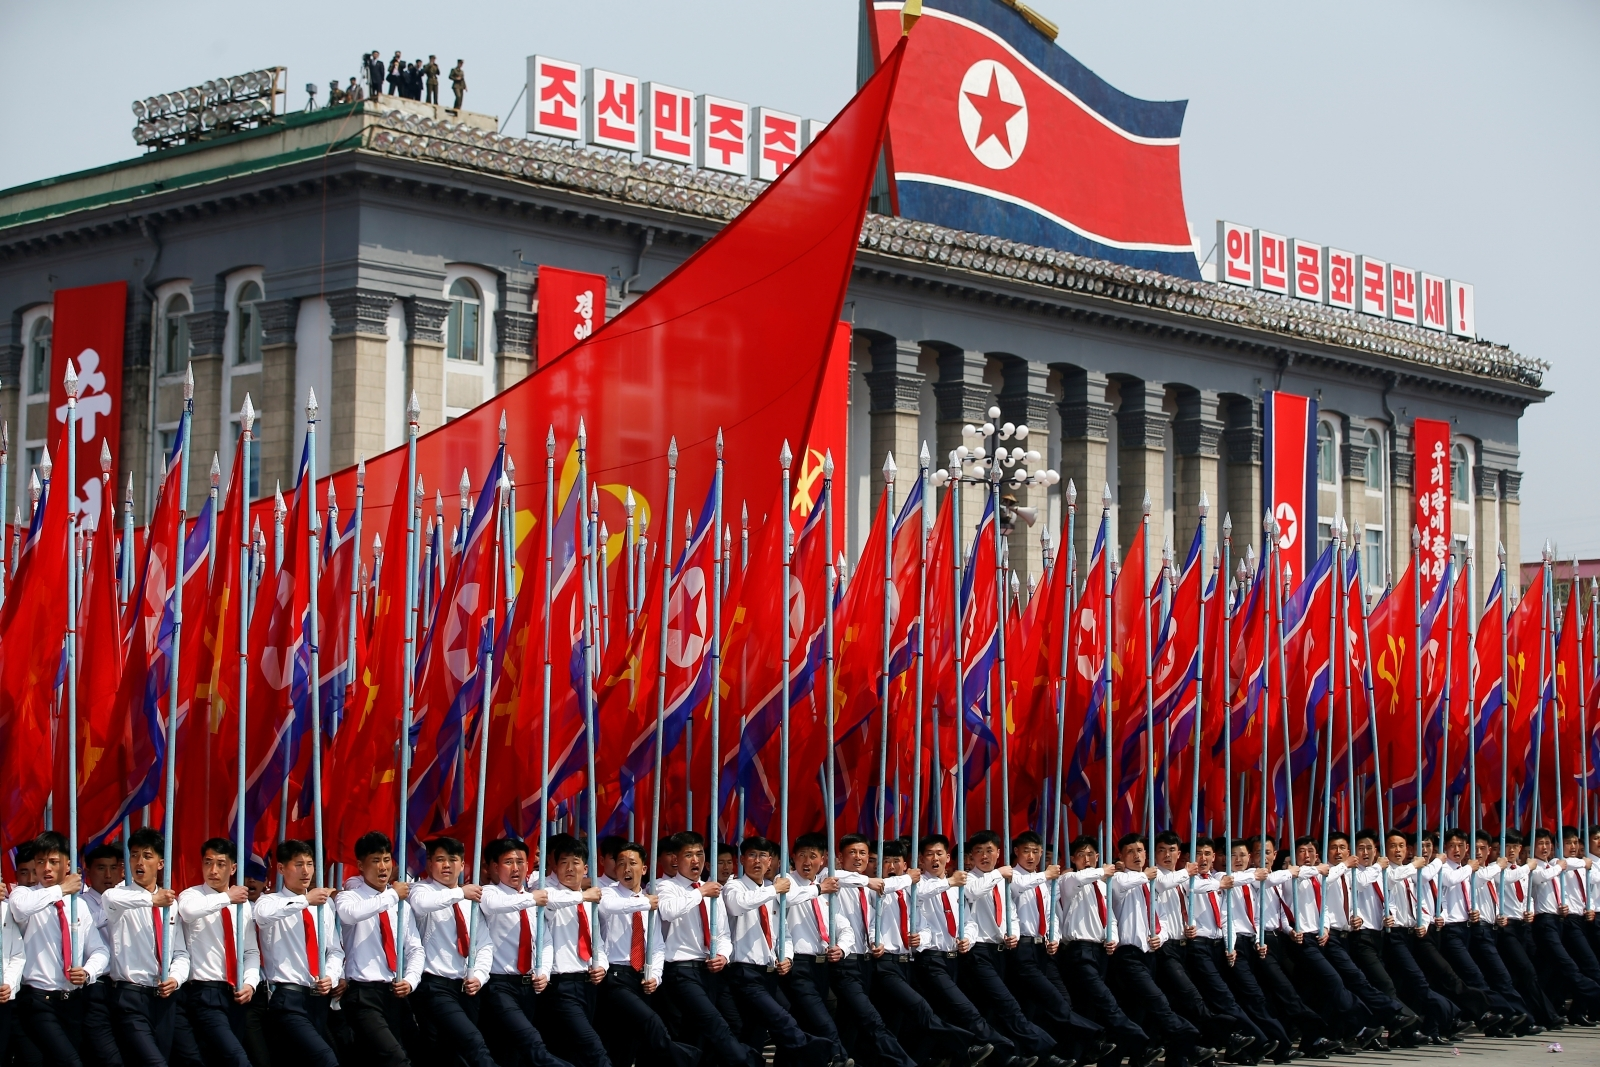 China: Diplomacy needed for denuclearisation of Korean peninsula